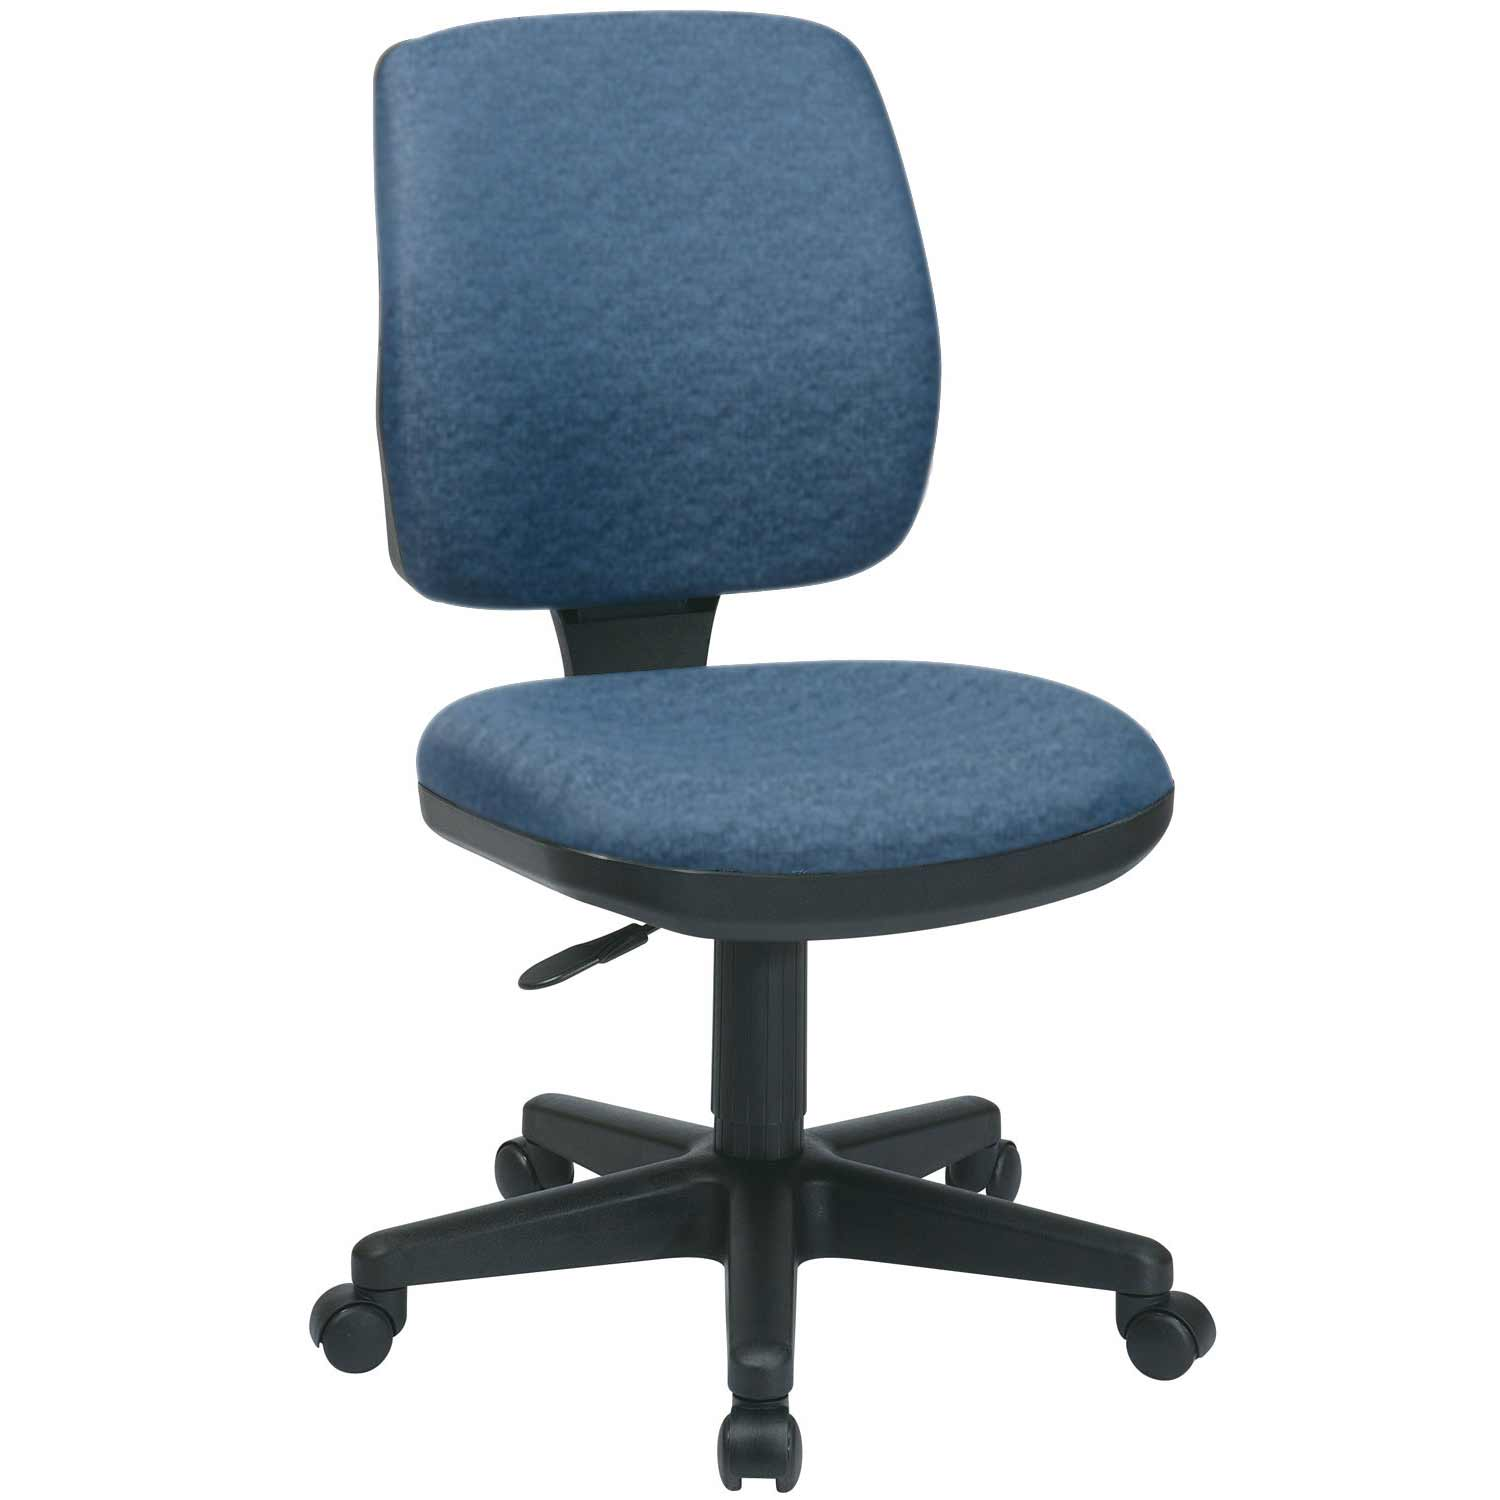 Armless Desk Chairs Armless Task Chairs For Home Office